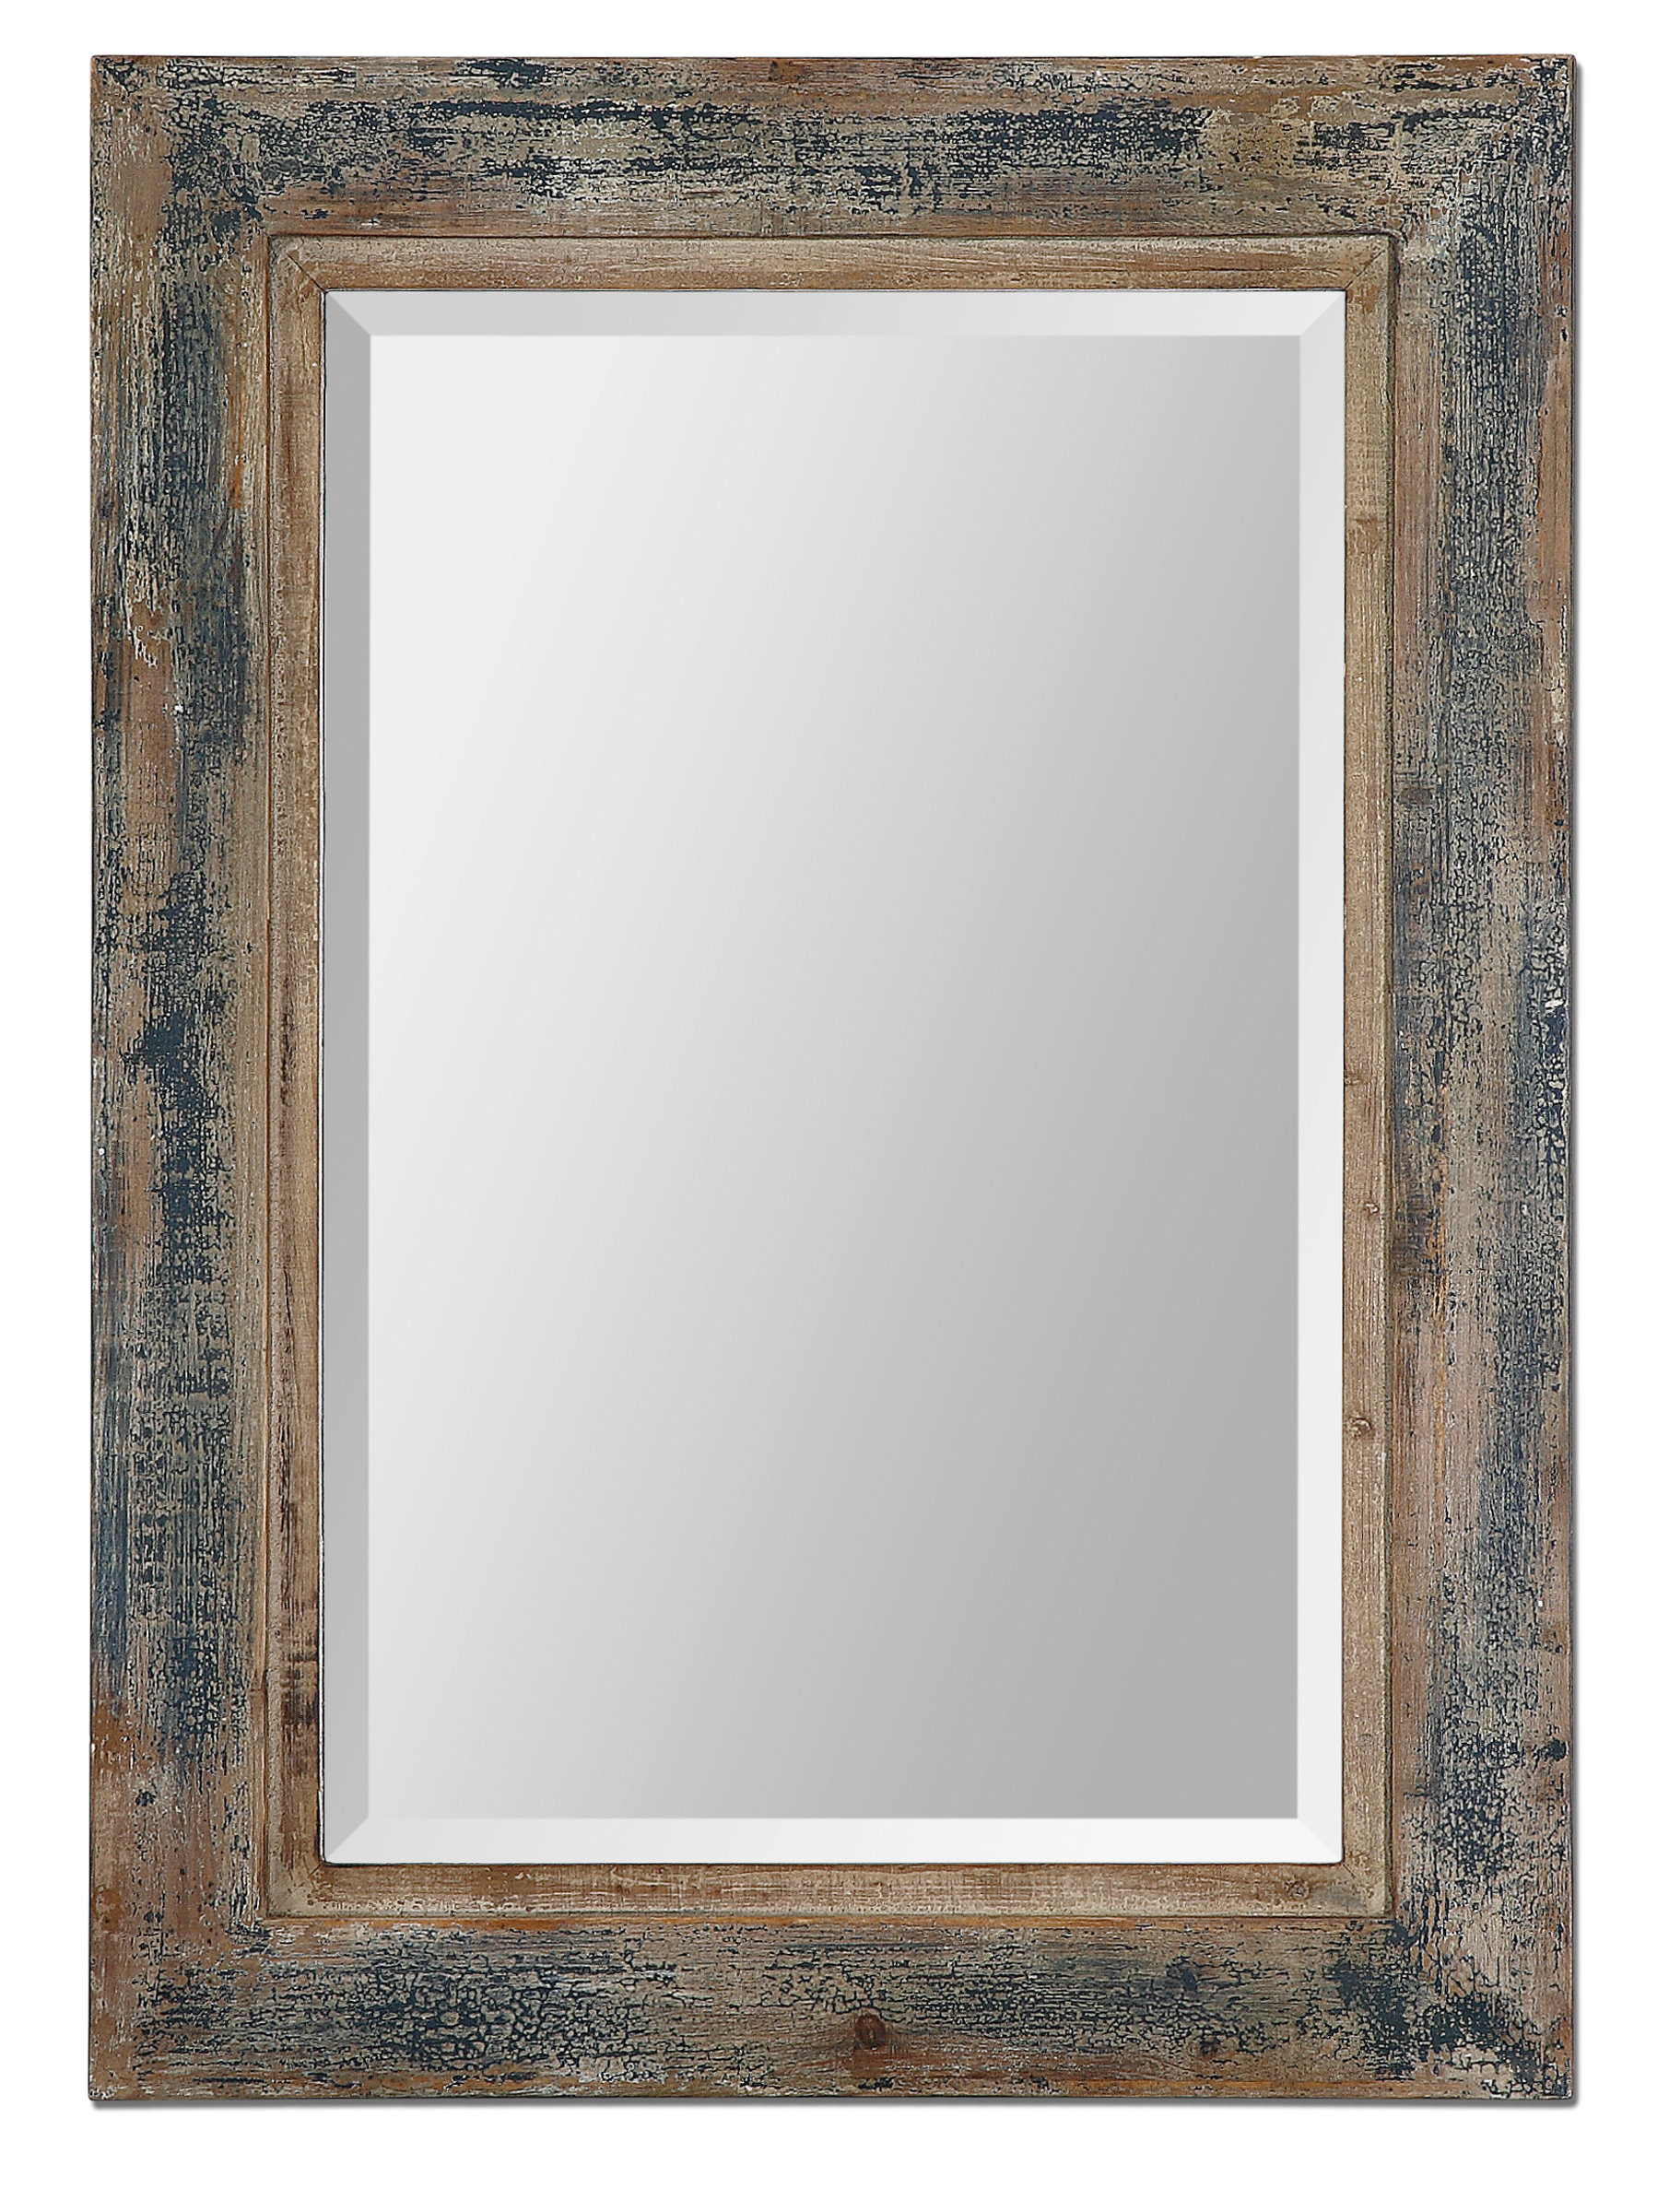 Farmhouse & Rustic Blue Wall & Accent Mirrors | Birch Lane Intended For Reba Accent Wall Mirrors (View 17 of 20)